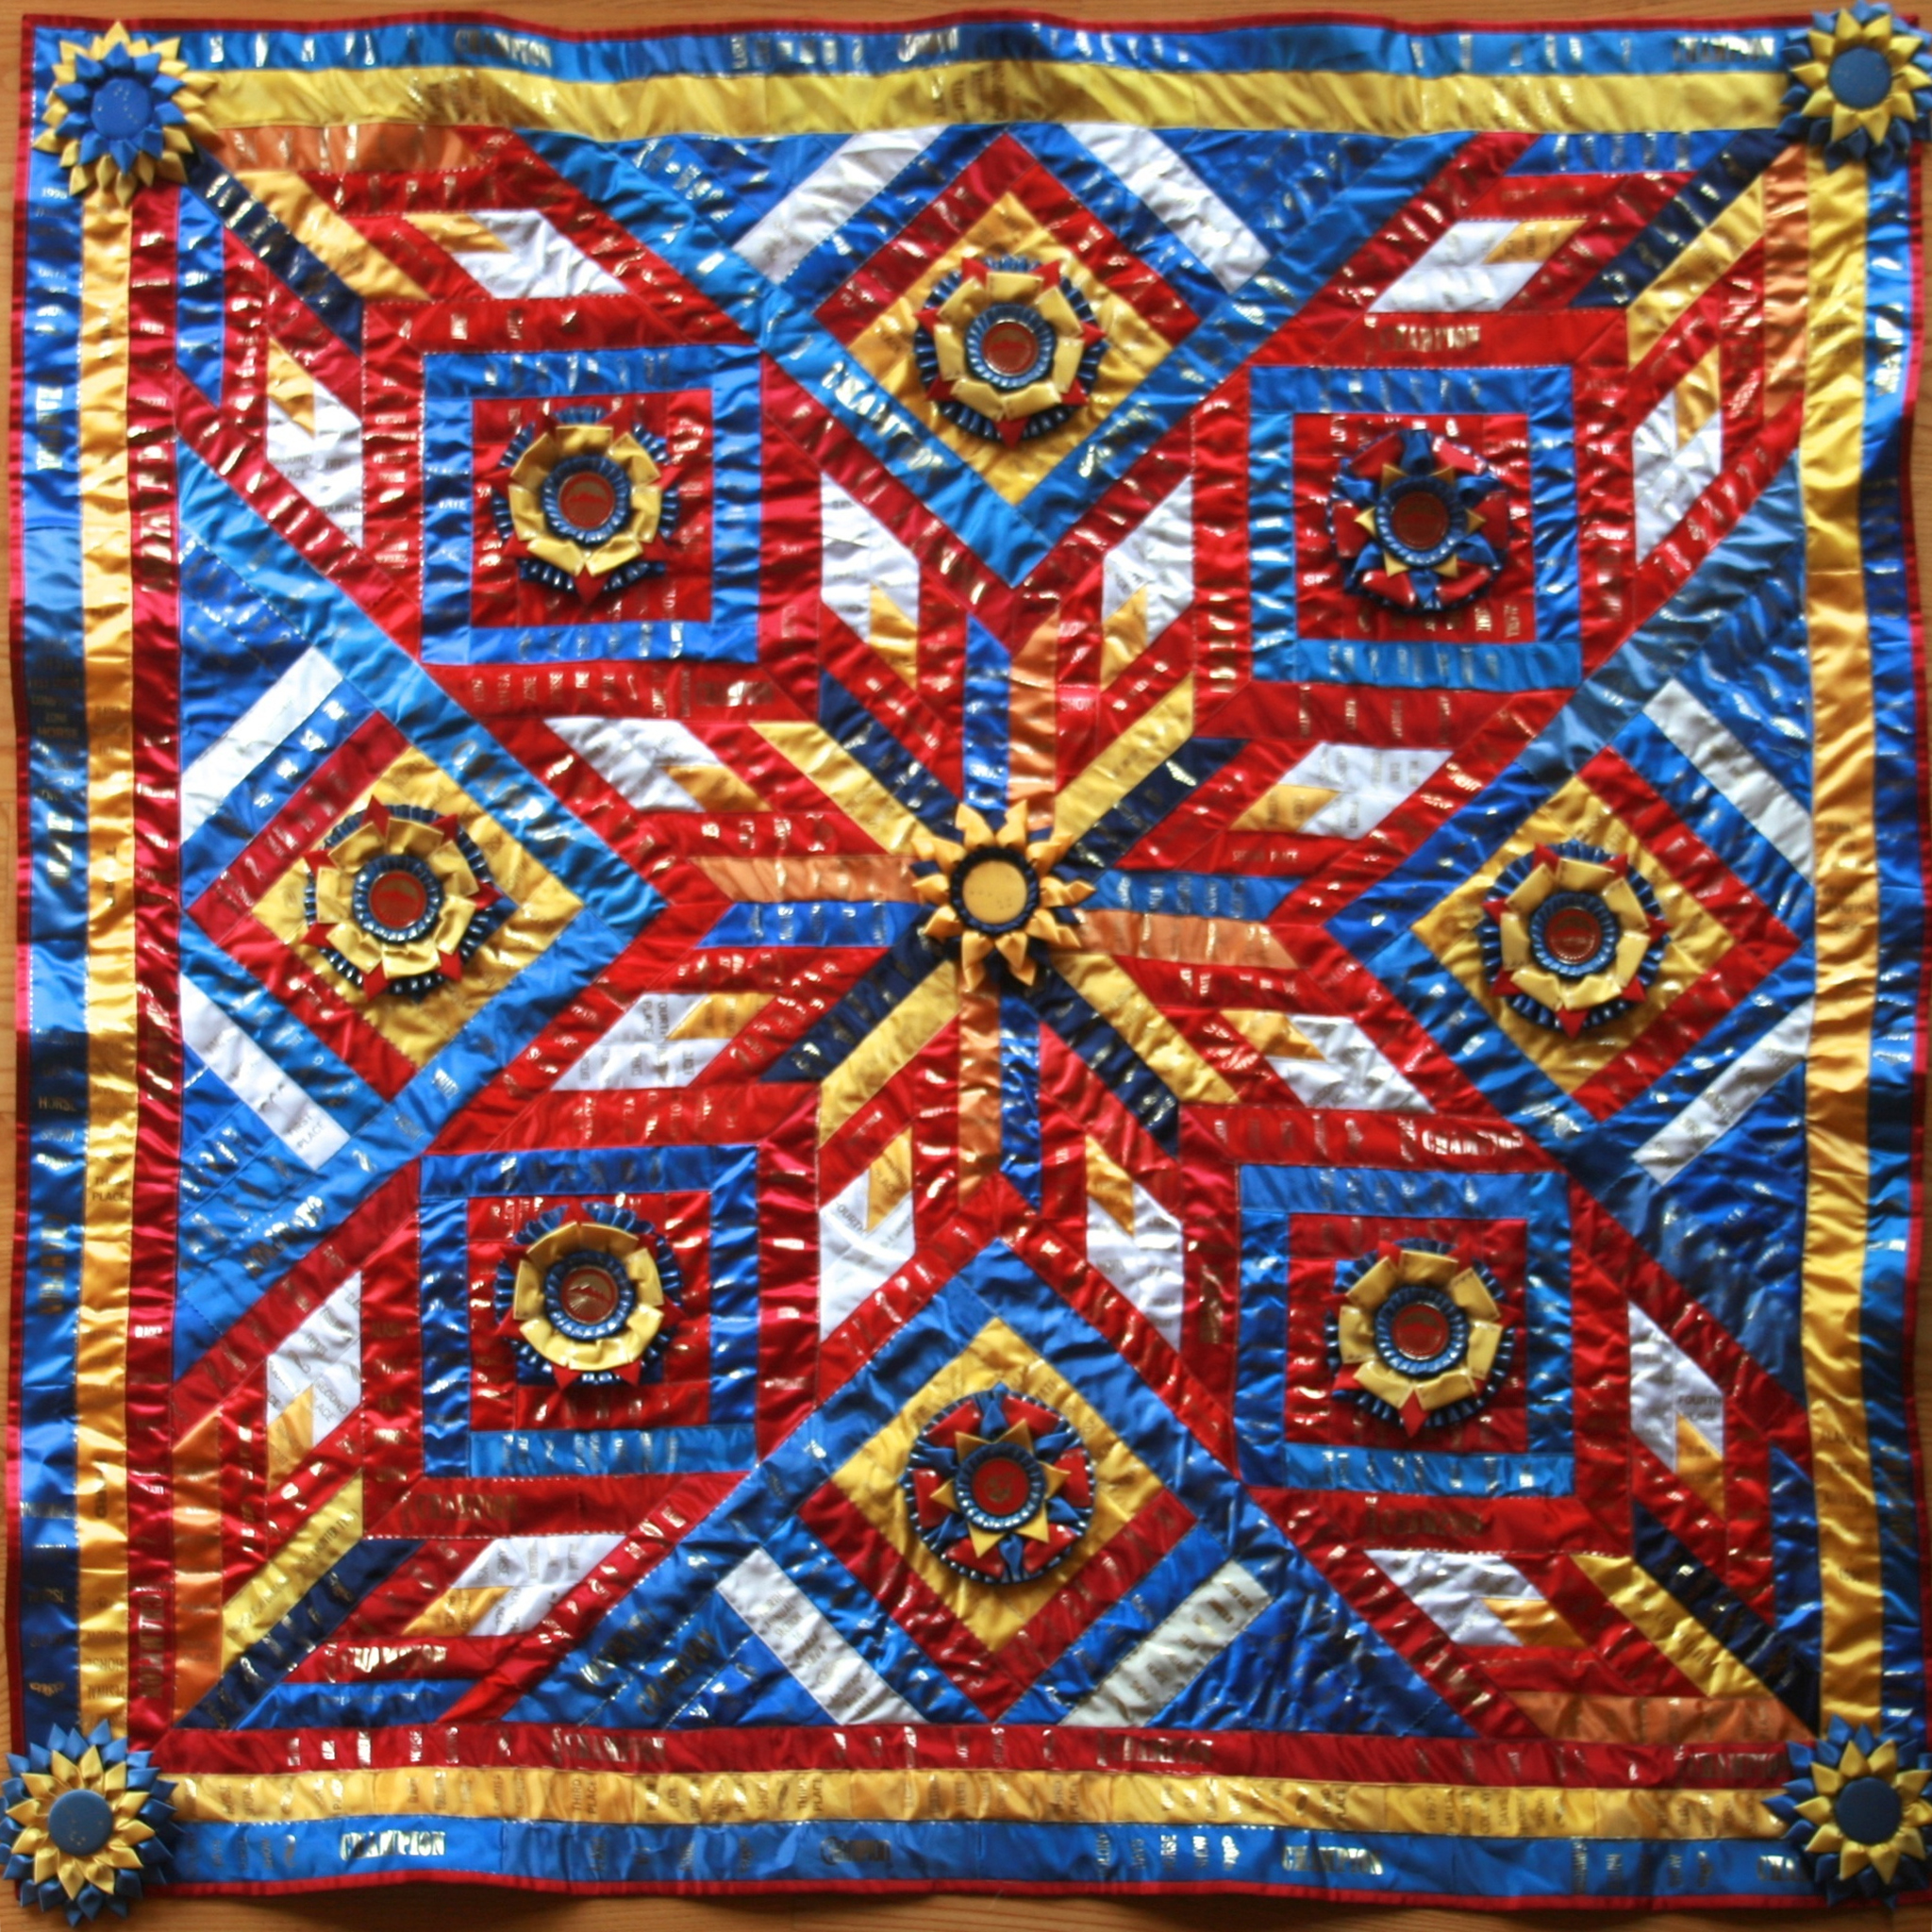 ShowThrow Heirloom Ribbon Quilts by Lani B. Ohly : quilt horse - Adamdwight.com